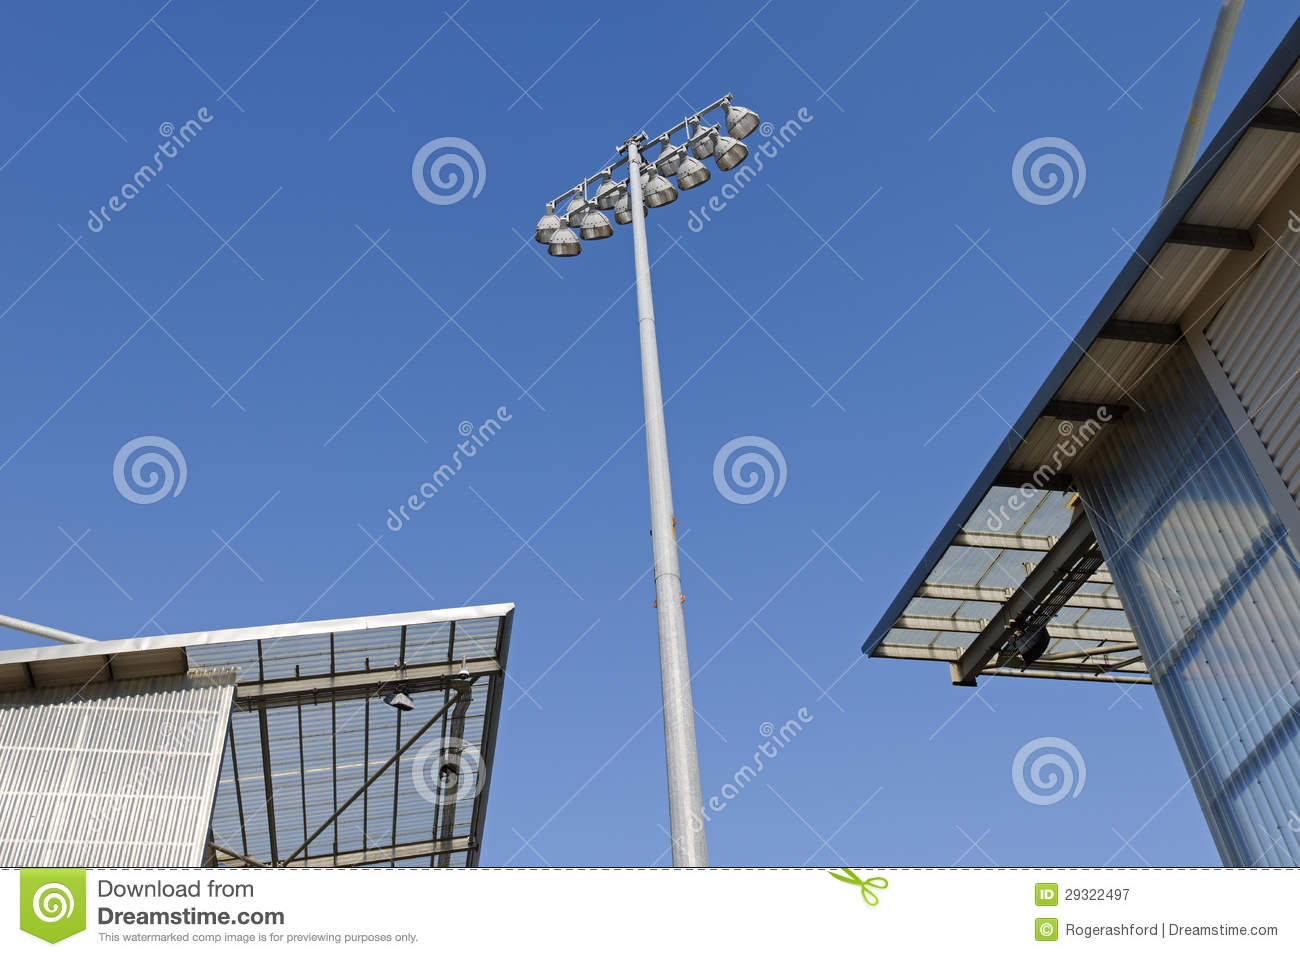 Stadium Floodlights Vector : Stadium floodlights royalty free stock photography image